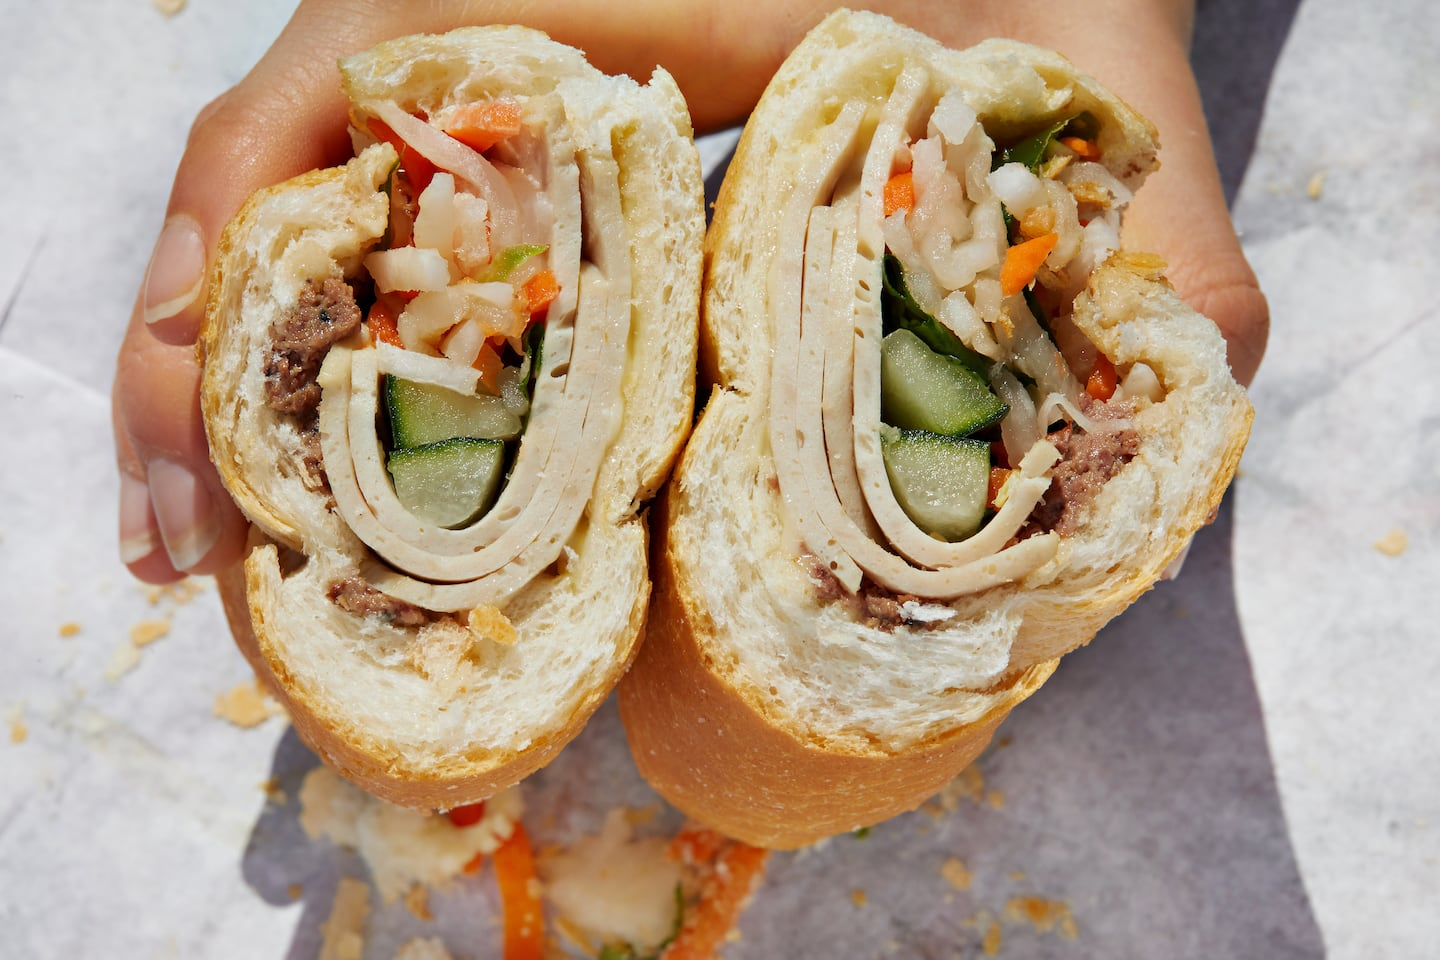 Eden Center's tastiest 7 Vietnamese dishes, including banh mi, roast duck and skewers